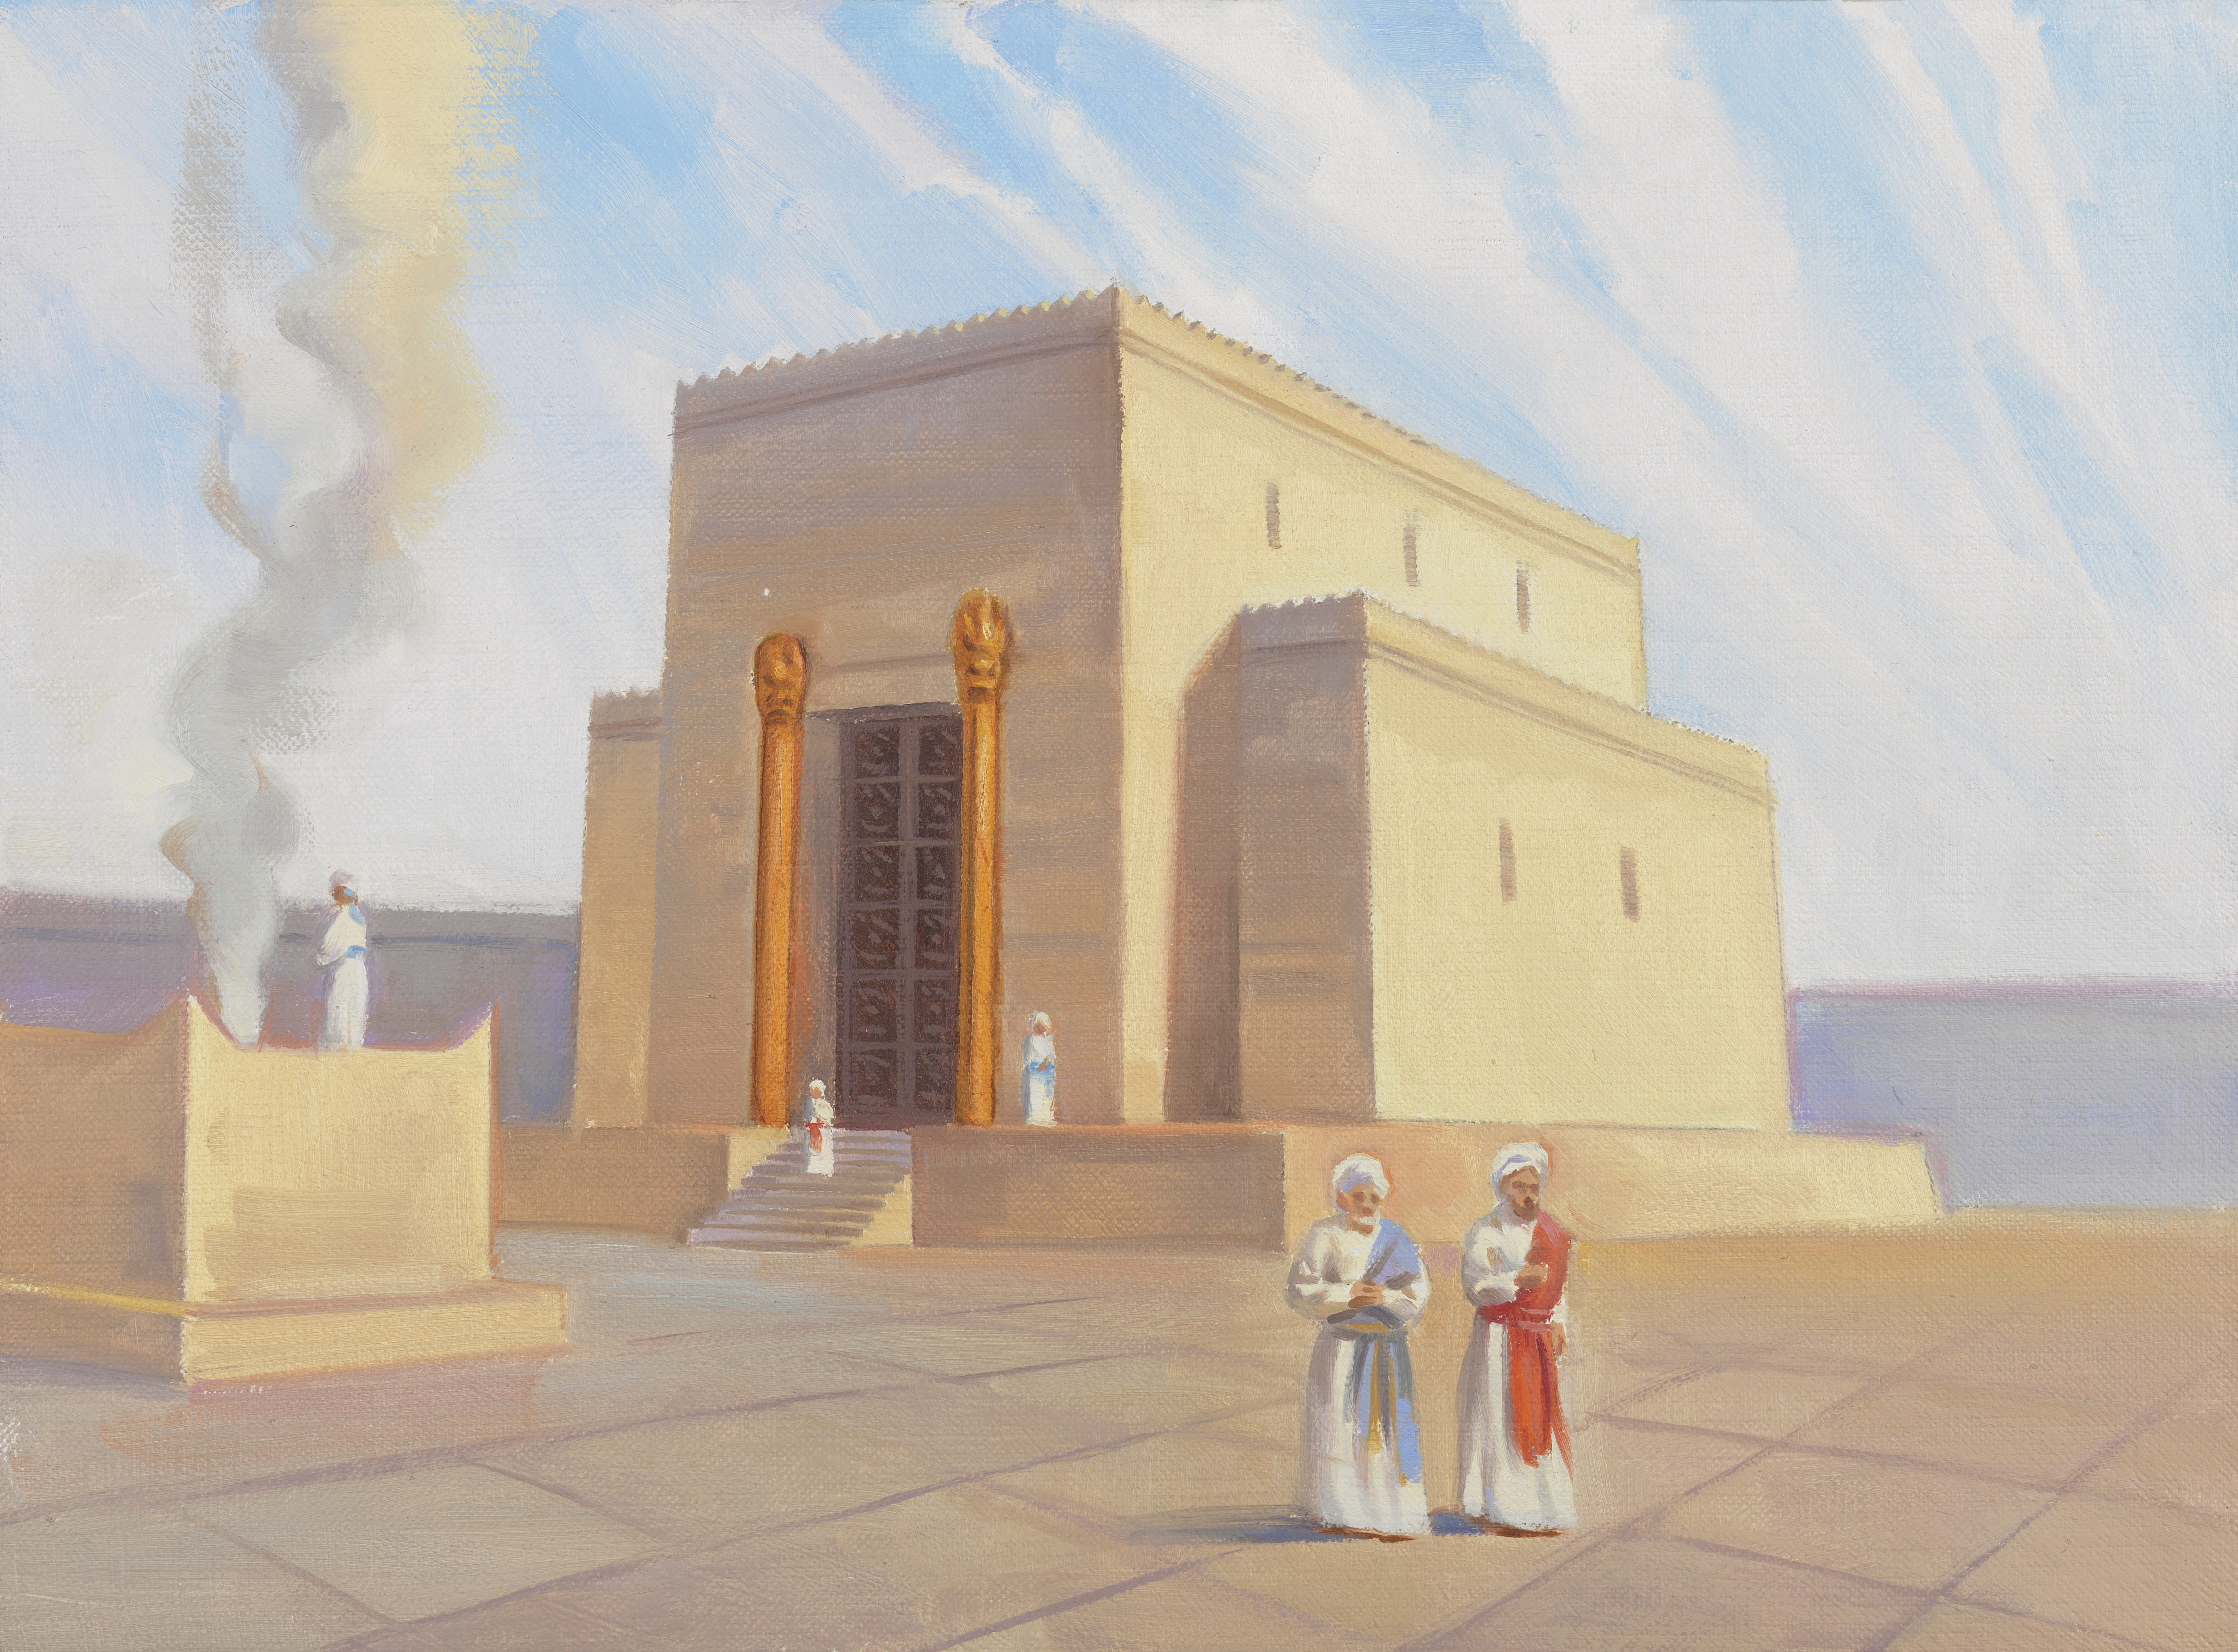 A depiction of Zerubbabel's temple, by Sam Lawlor.